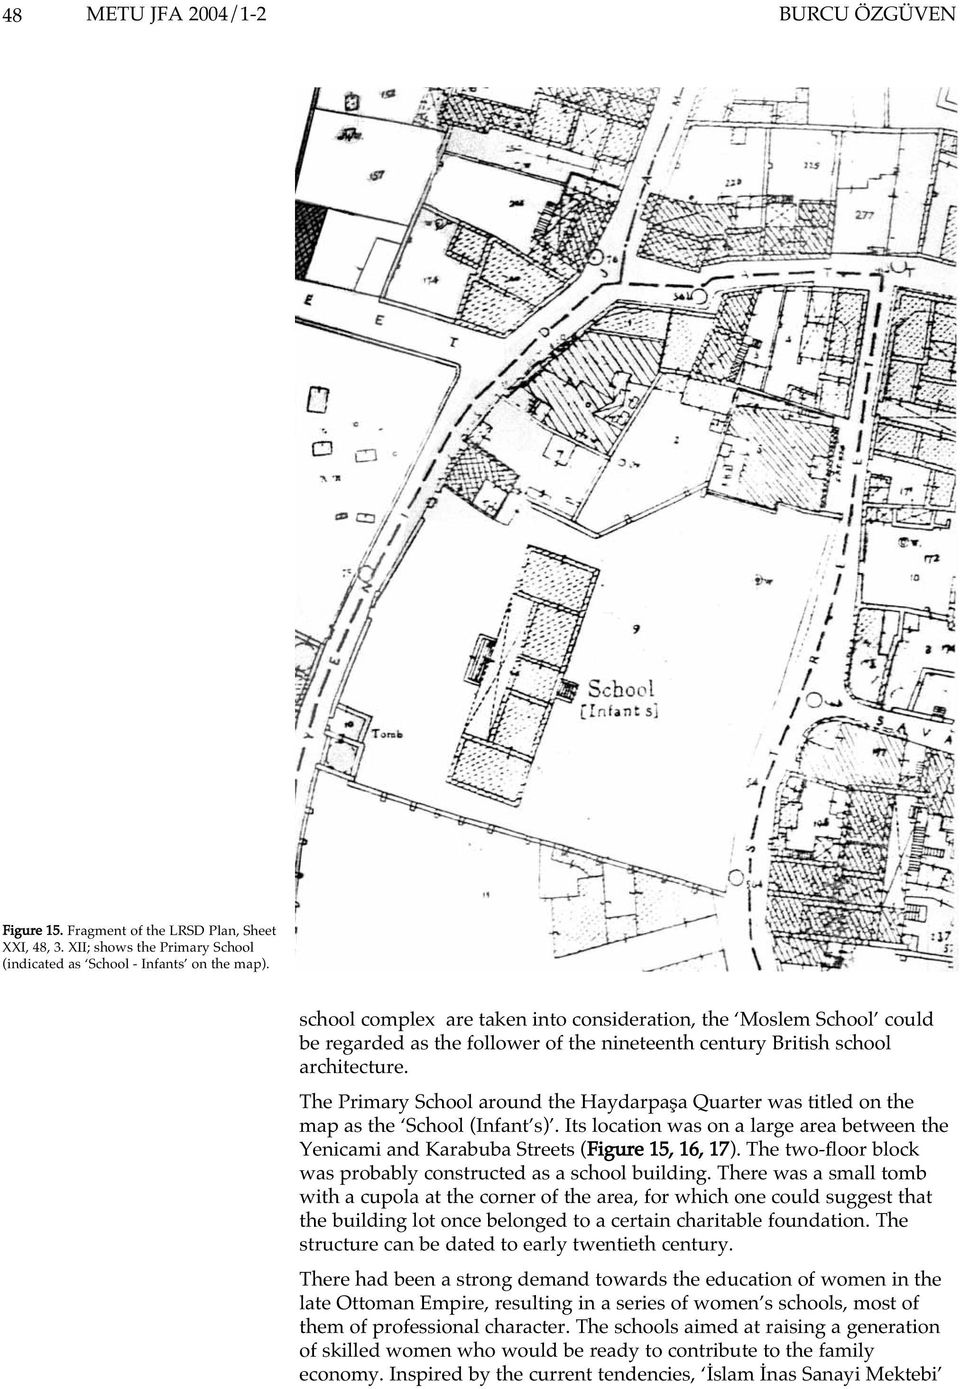 The Primary School around the Haydarpaþa Quarter was titled on the map as the School (Infant s). Its location was on a large area between the Yenicami and Karabuba Streets (Figure 15, 16, 17).